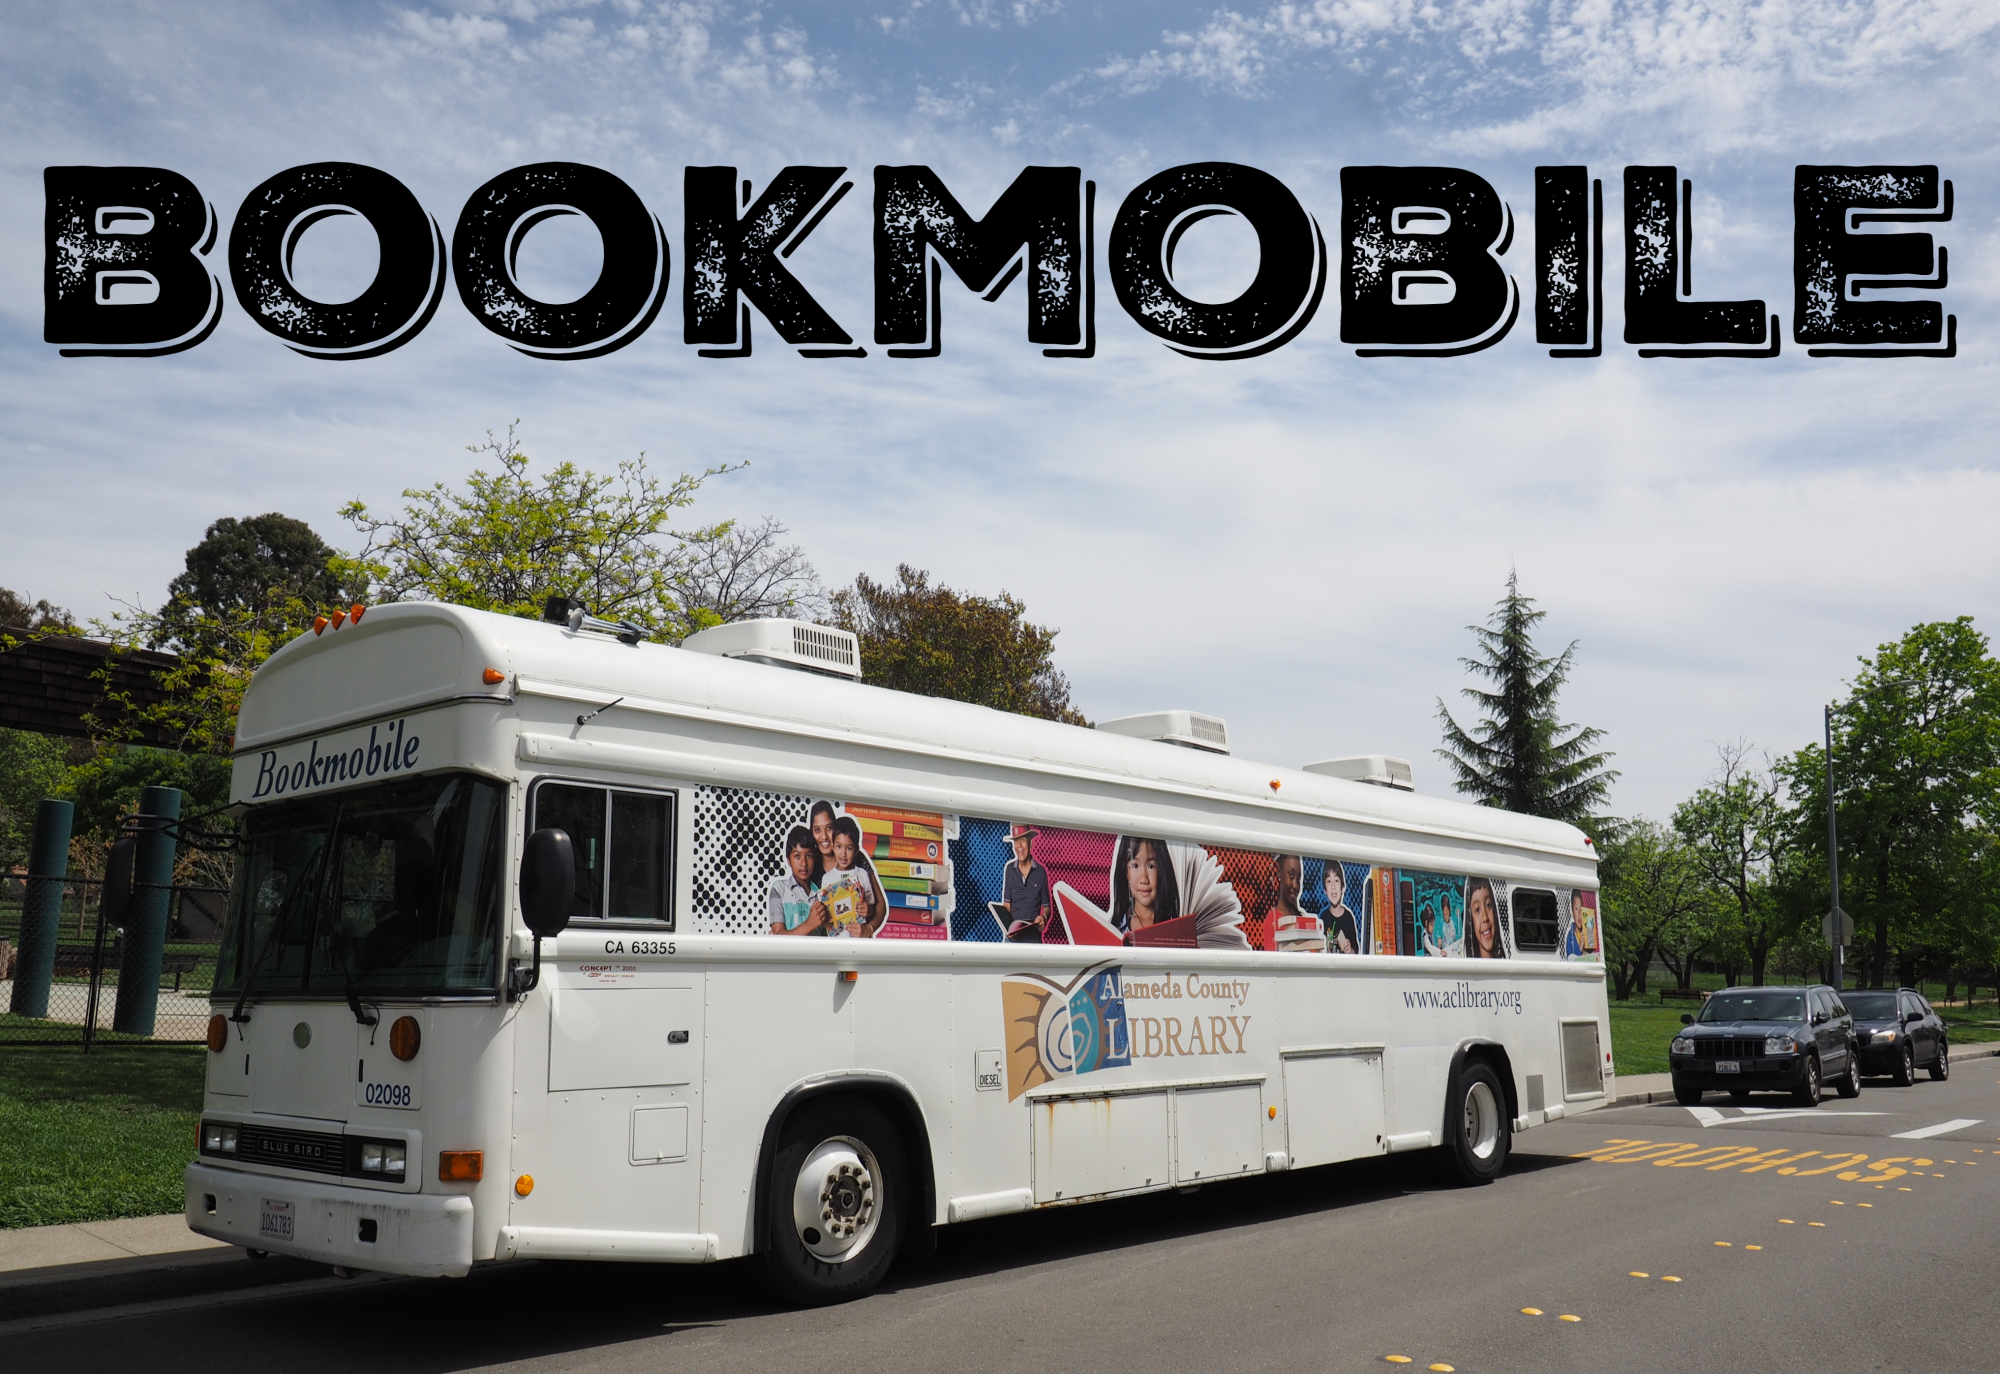 Eden House Apartments - bookmobile stop